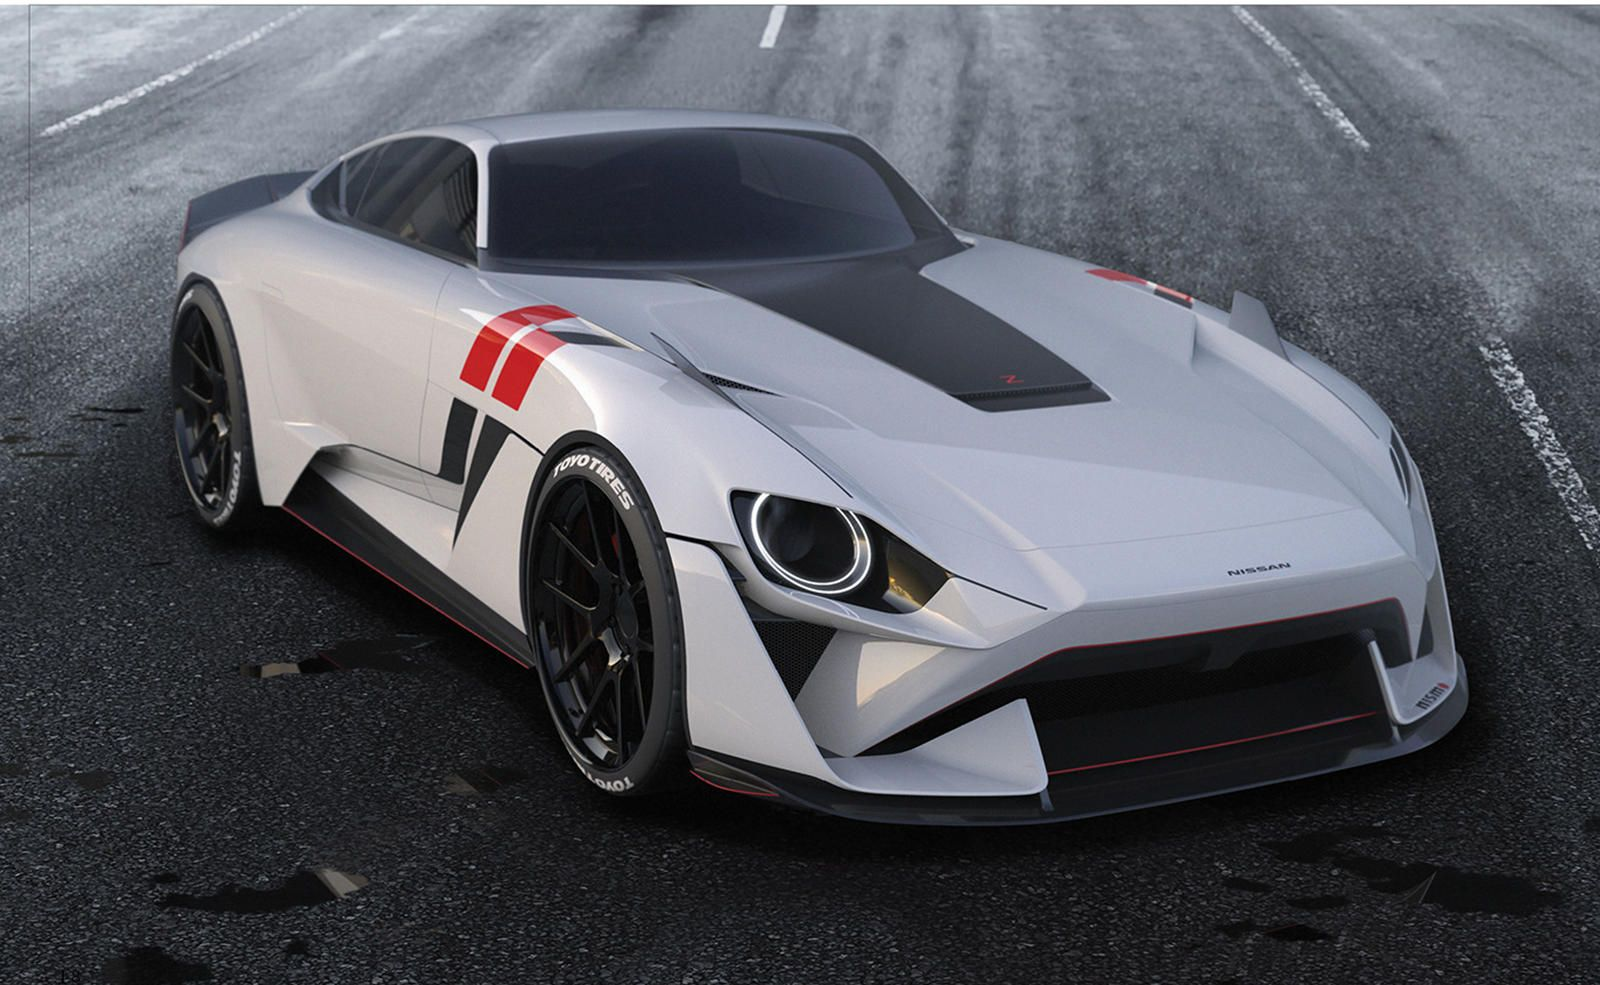 The Nissan 400z Could Be In Trouble Nissan Is Developing A New Z Car That Much Is Certain But Will It Ever Make In 2020 Nissan Z Cars Nissan